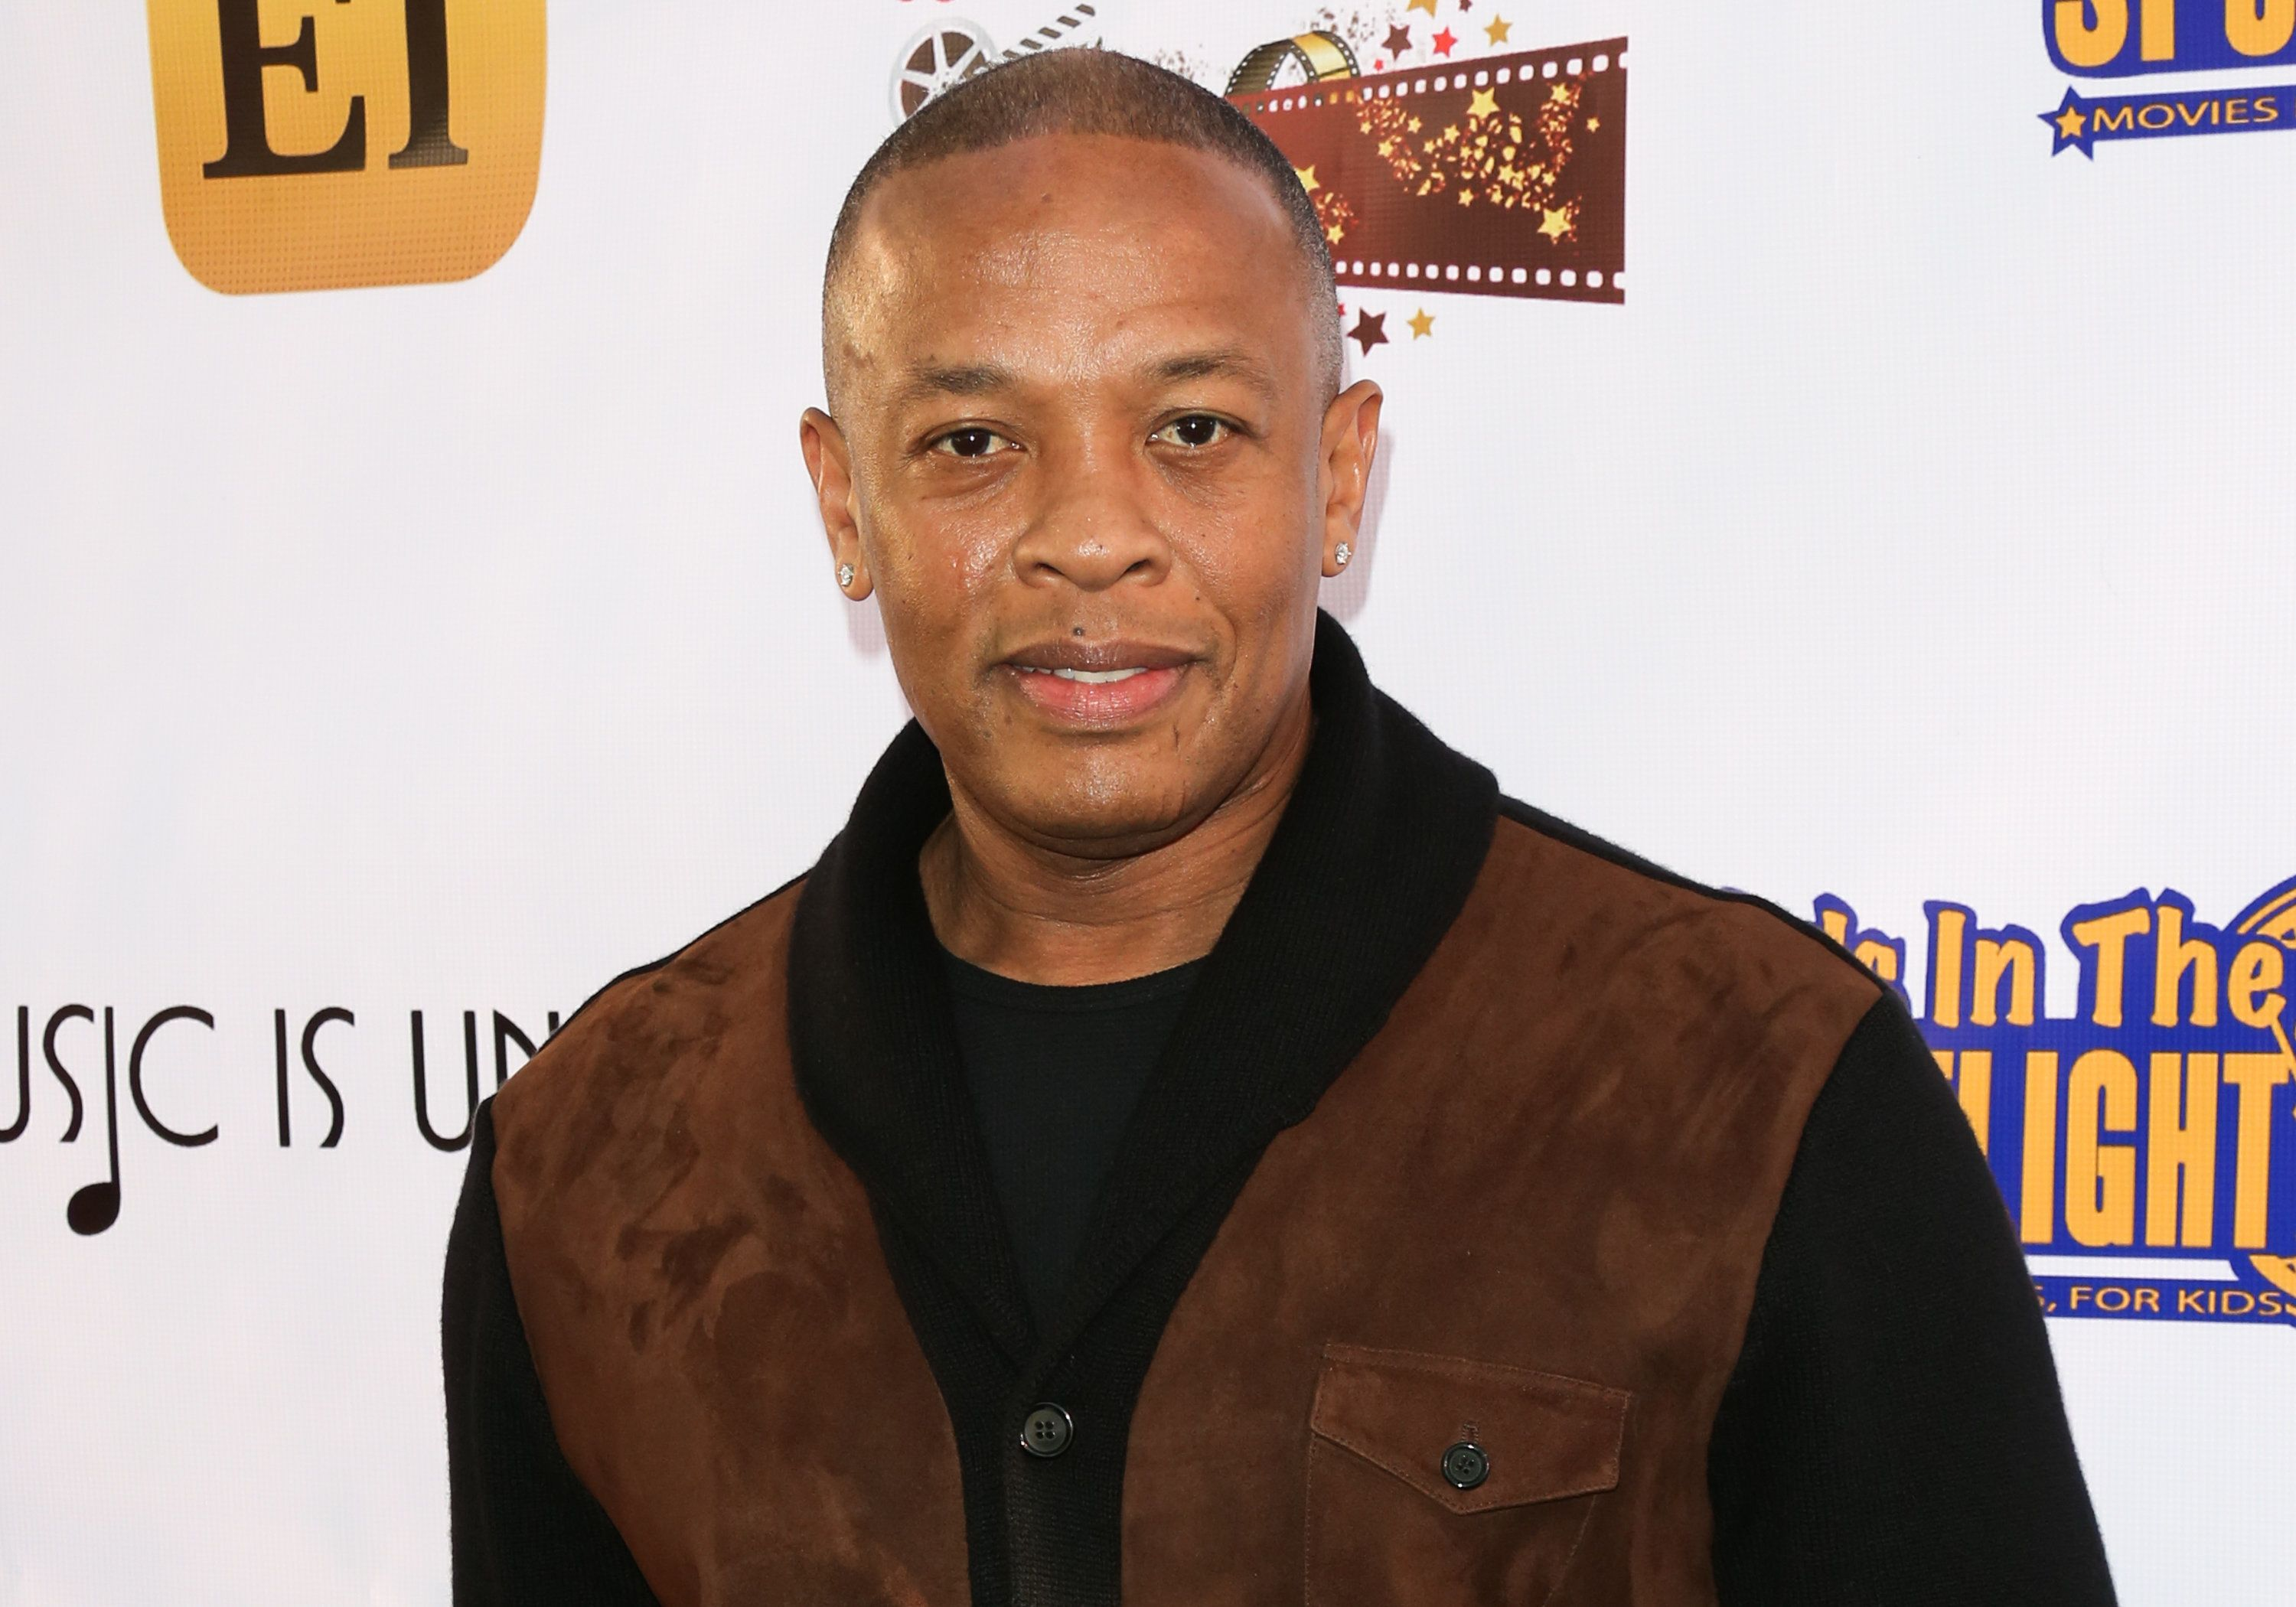 LOS ANGELES, CA - NOVEMBER 07:  Rapper / Producer Dr. Dre attends the Kids In The Spotlight's Movies By Kids, For Kids Film Awards at Fox Studios on November 7, 2015 in Los Angeles, California.  (Photo by Paul Archuleta/FilmMagic)